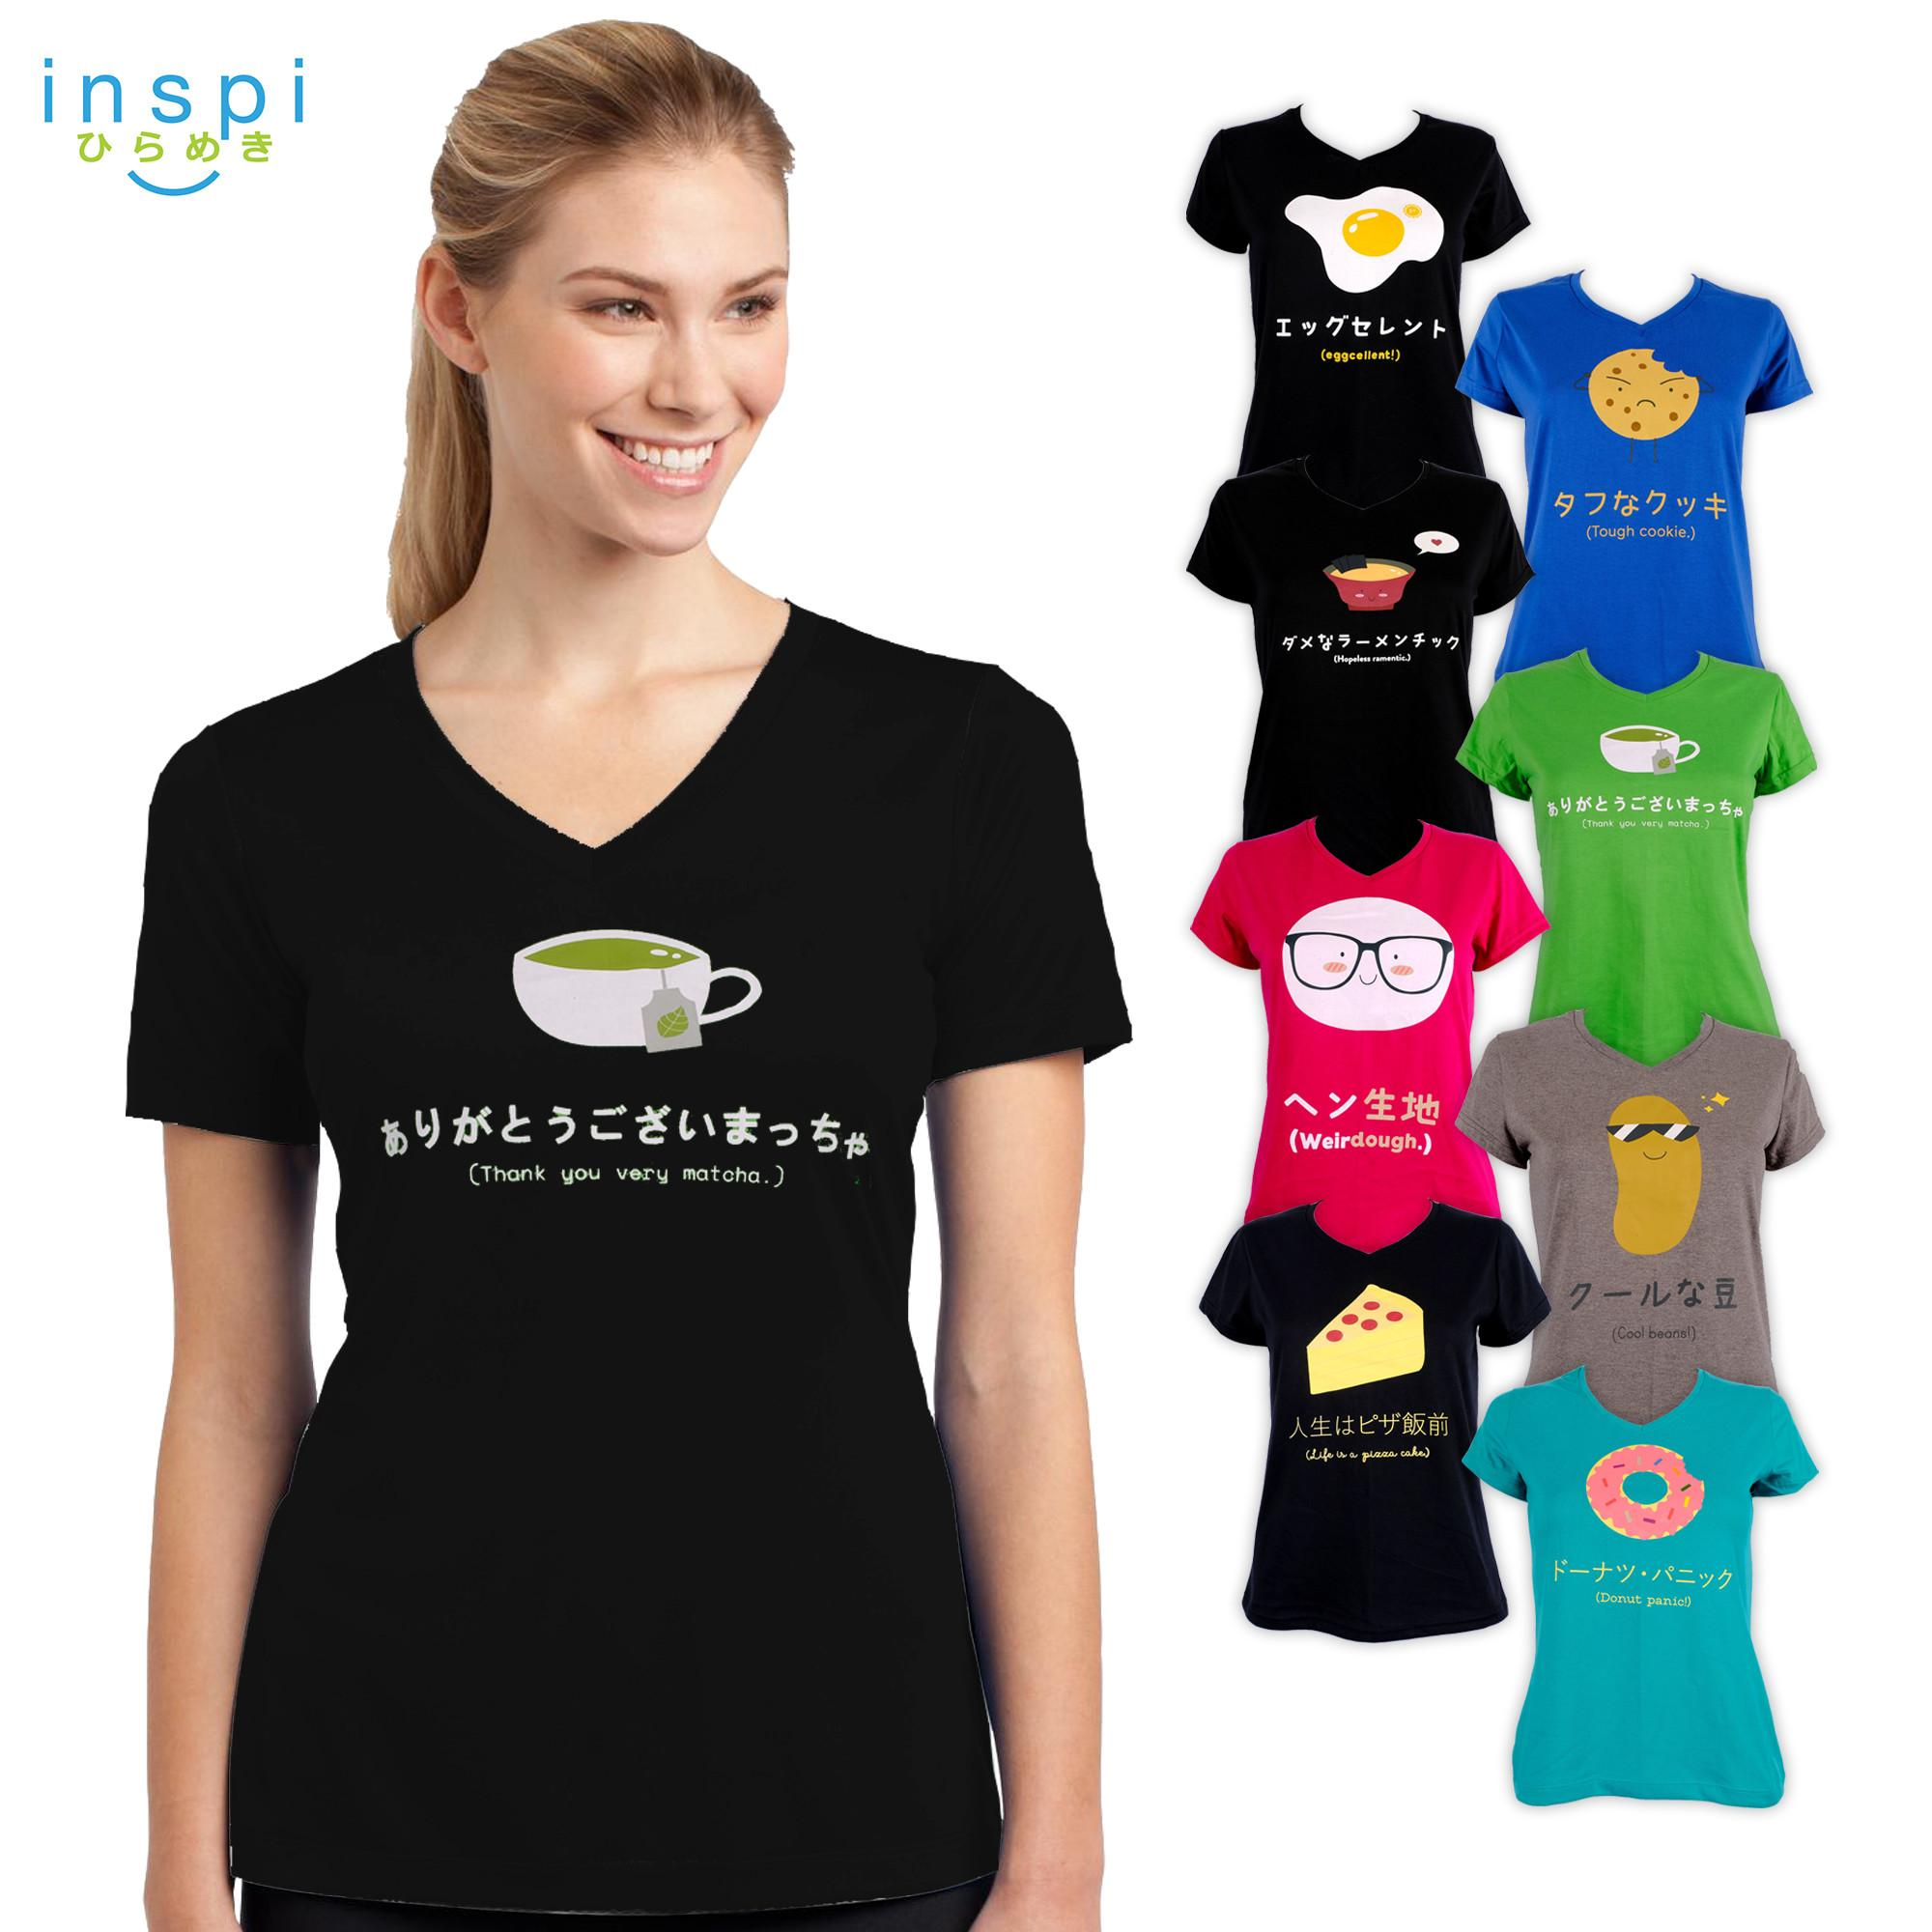 70f6dc7c48041d INSPI Tees Ladies Food Pun Collection tshirt printed graphic tee Ladies t  shirt shirts women tshirts